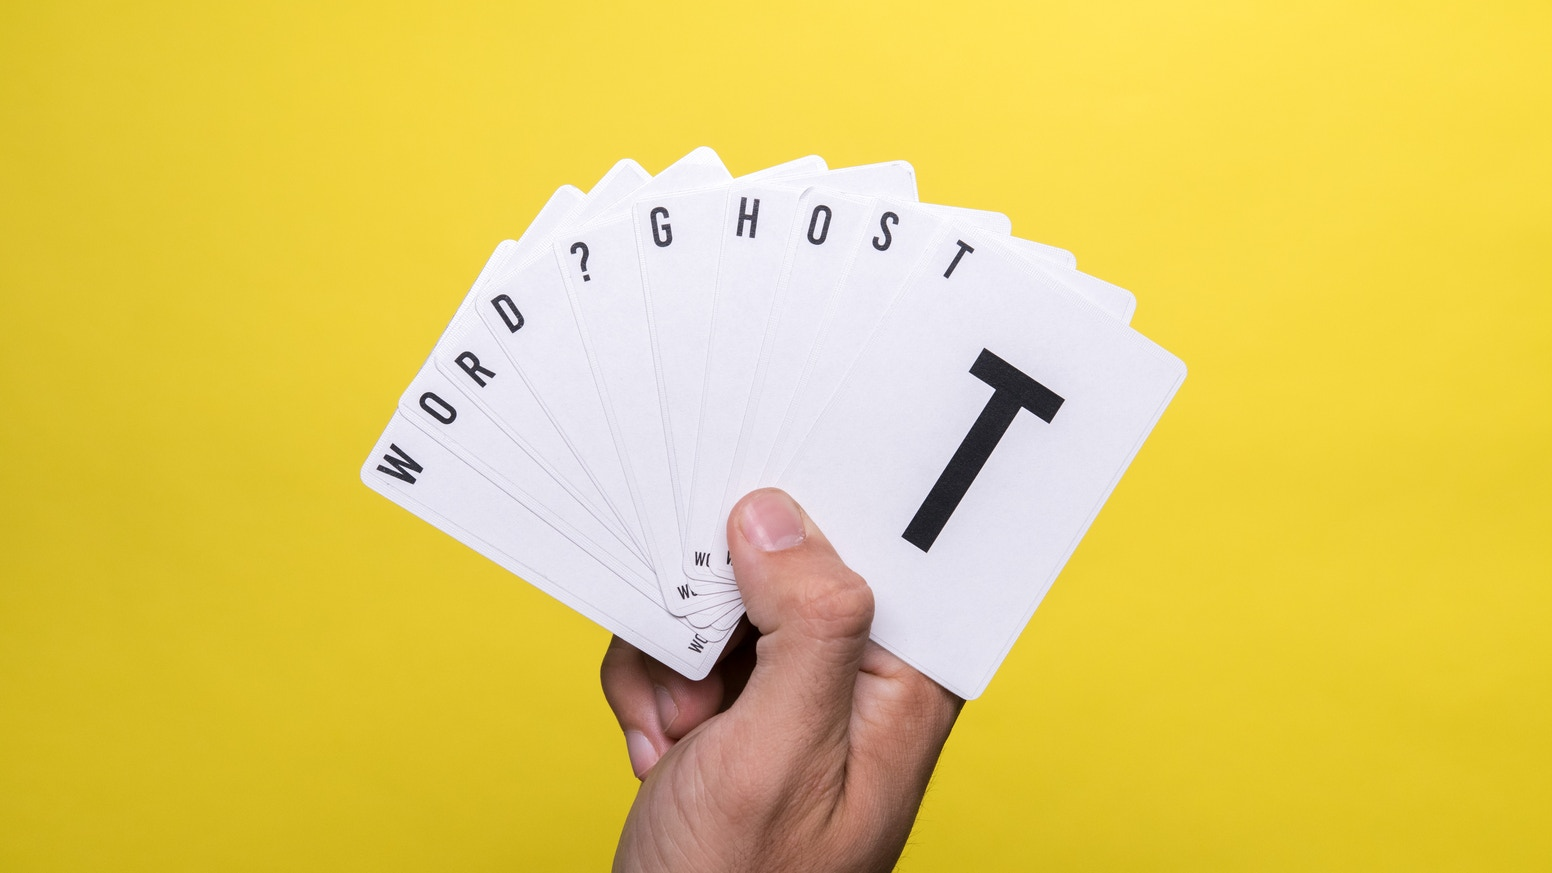 A word card game that combines quick thinking, vocabulary, and the ability to stay one step ahead of your opponents.